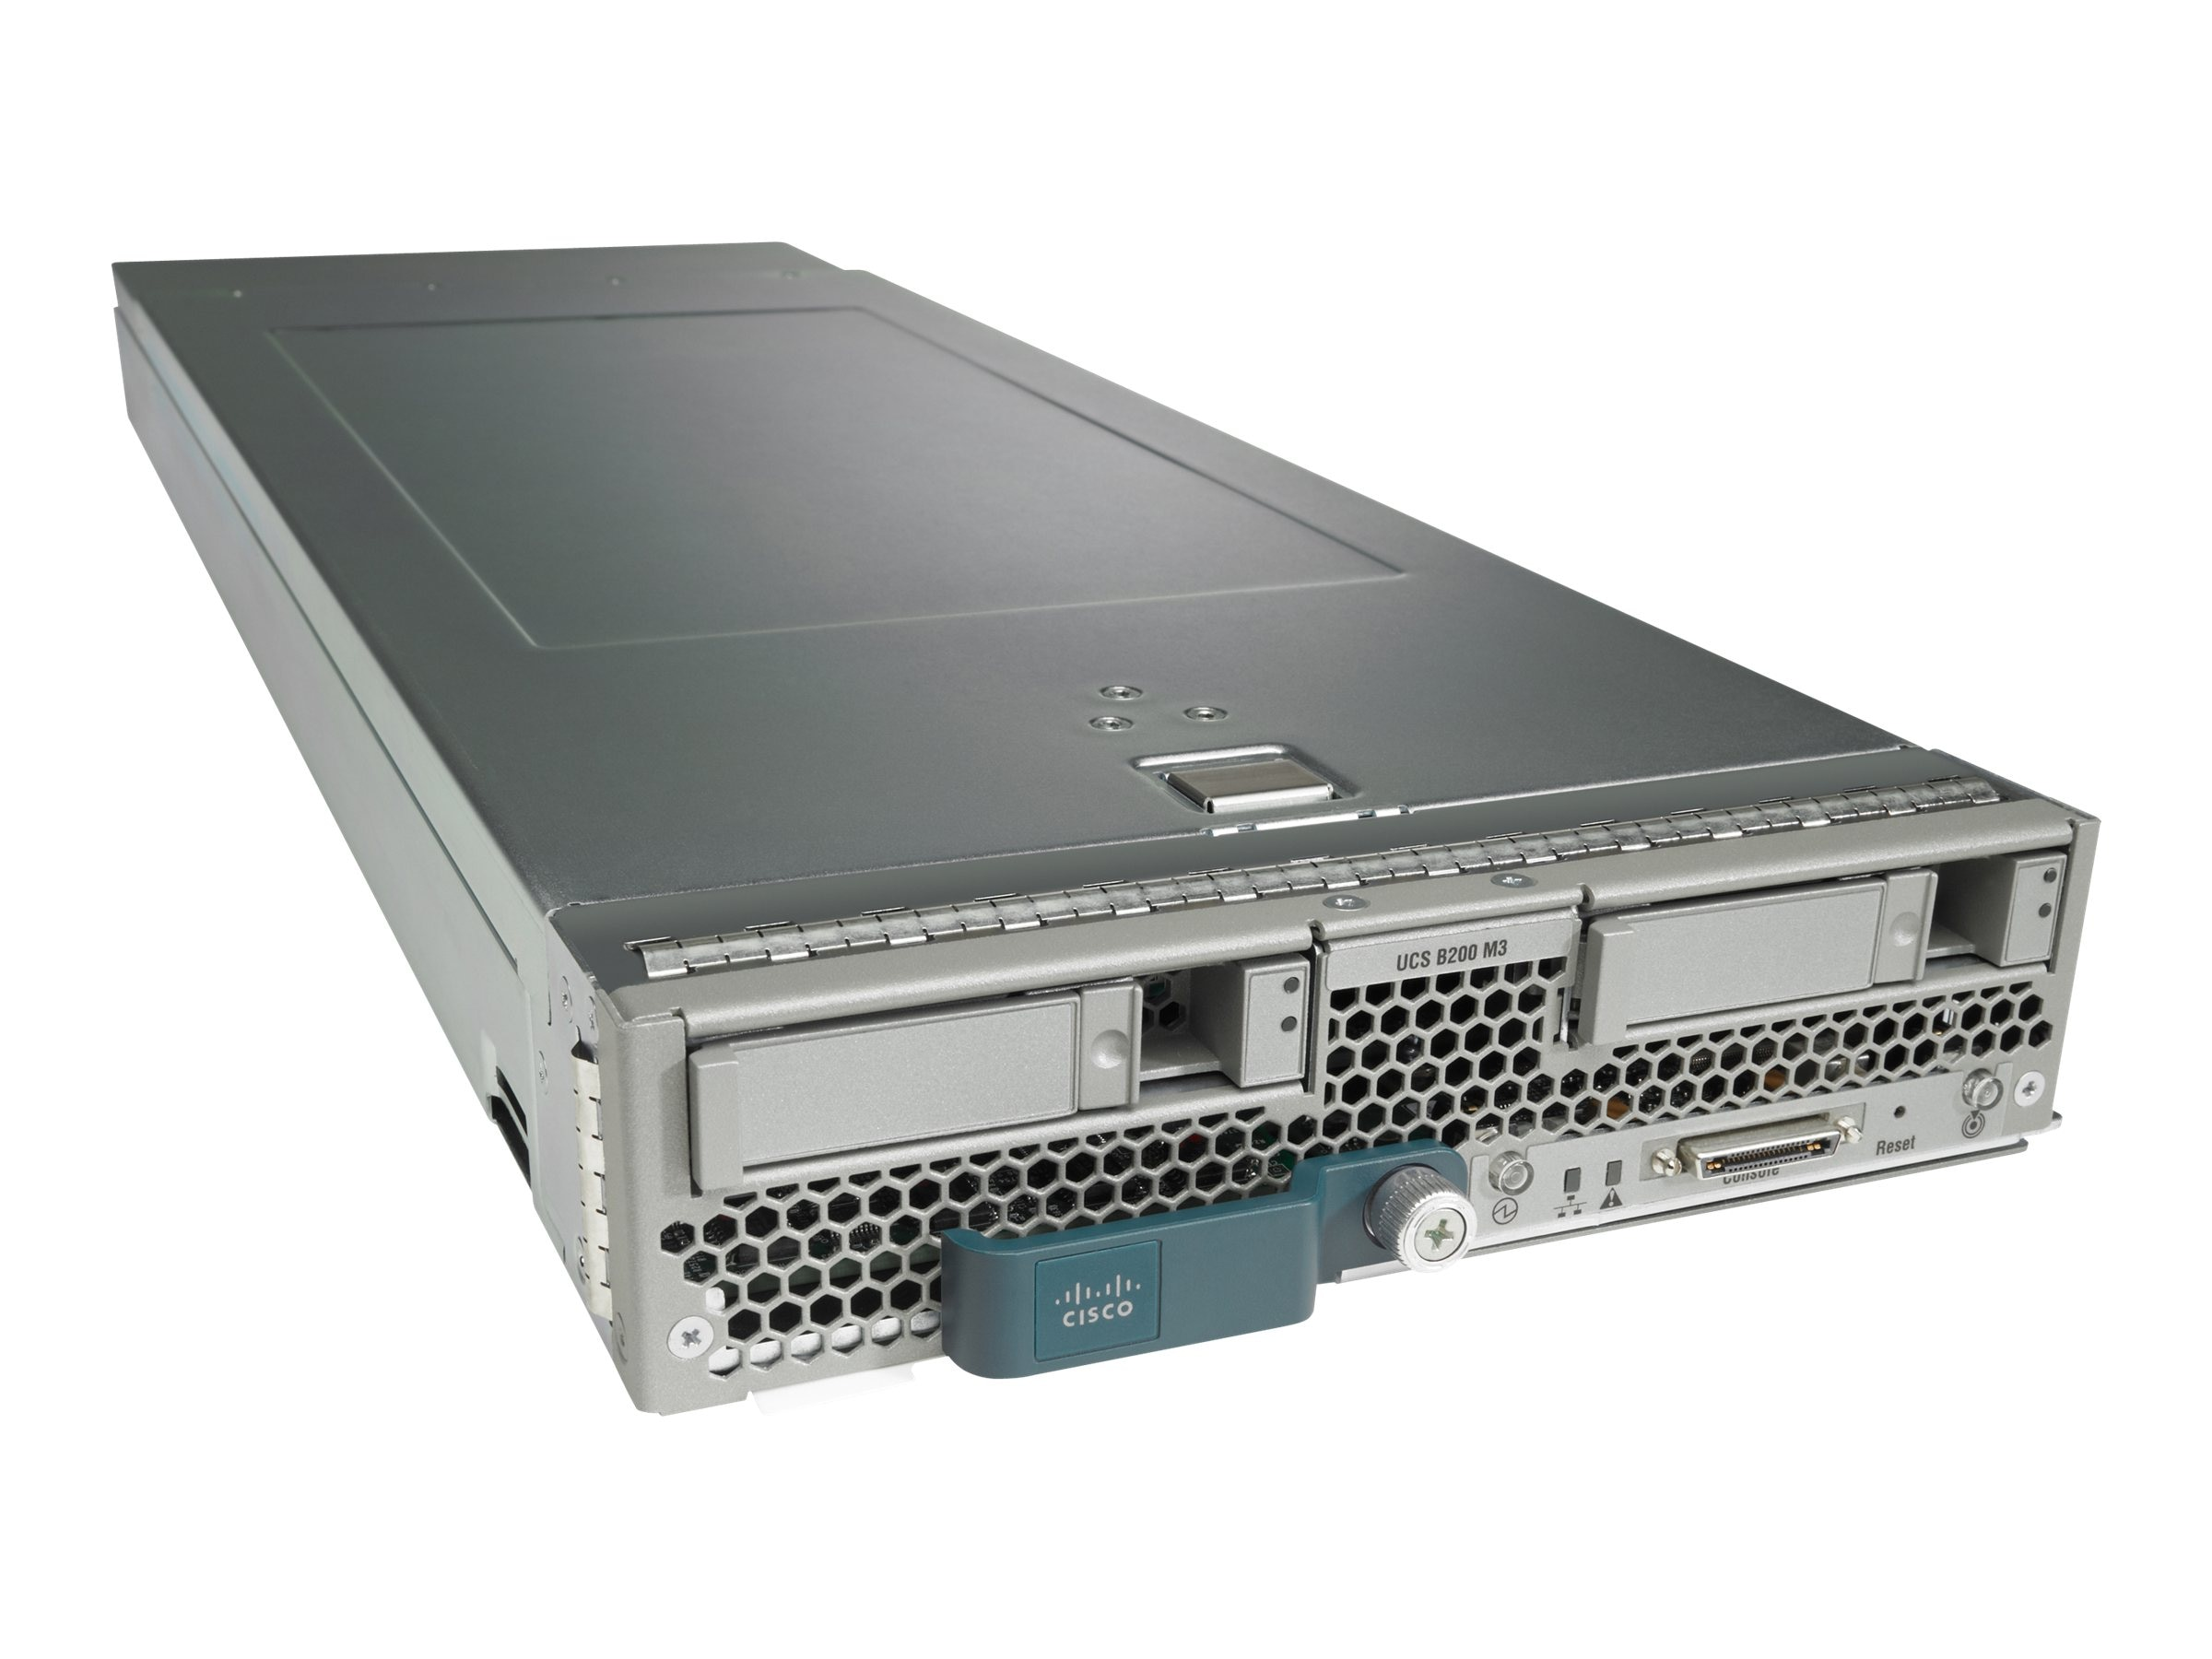 Cisco UCS B200 M3 Entry SmartPlay Expansion Pack (2x) Xeon E5-2609 v2 2.5GHz 64GB 2x2.5 Bays VIC1240, UCS-EZ7-B200-E